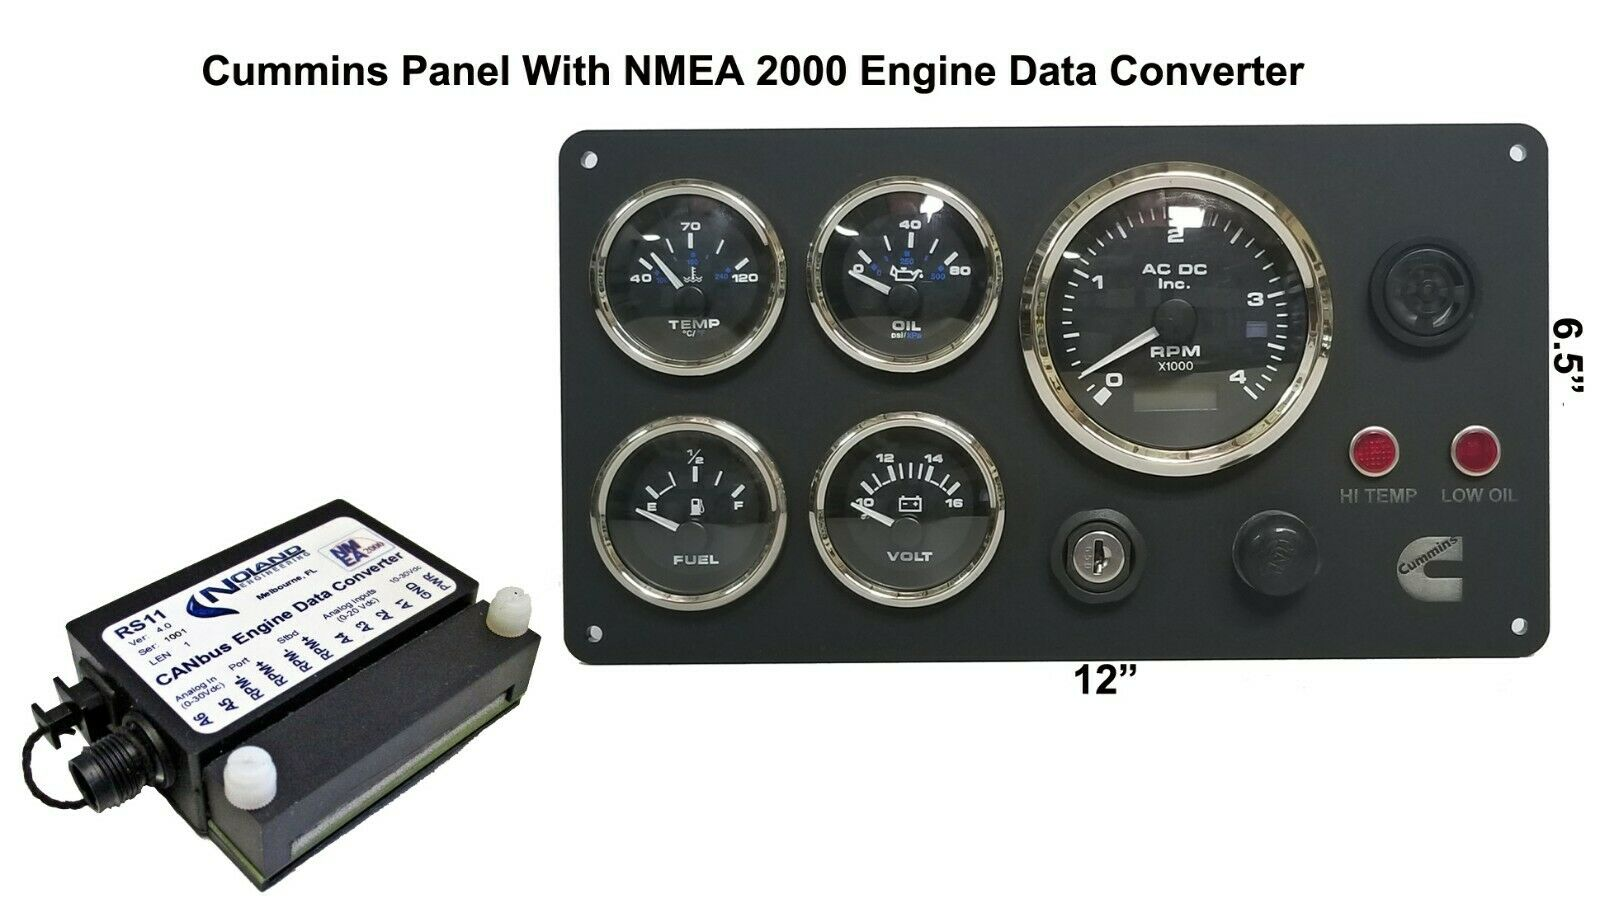 **Cummins Marine Instrument Panel With NMEA 2000 Engine Data Converter  Package black